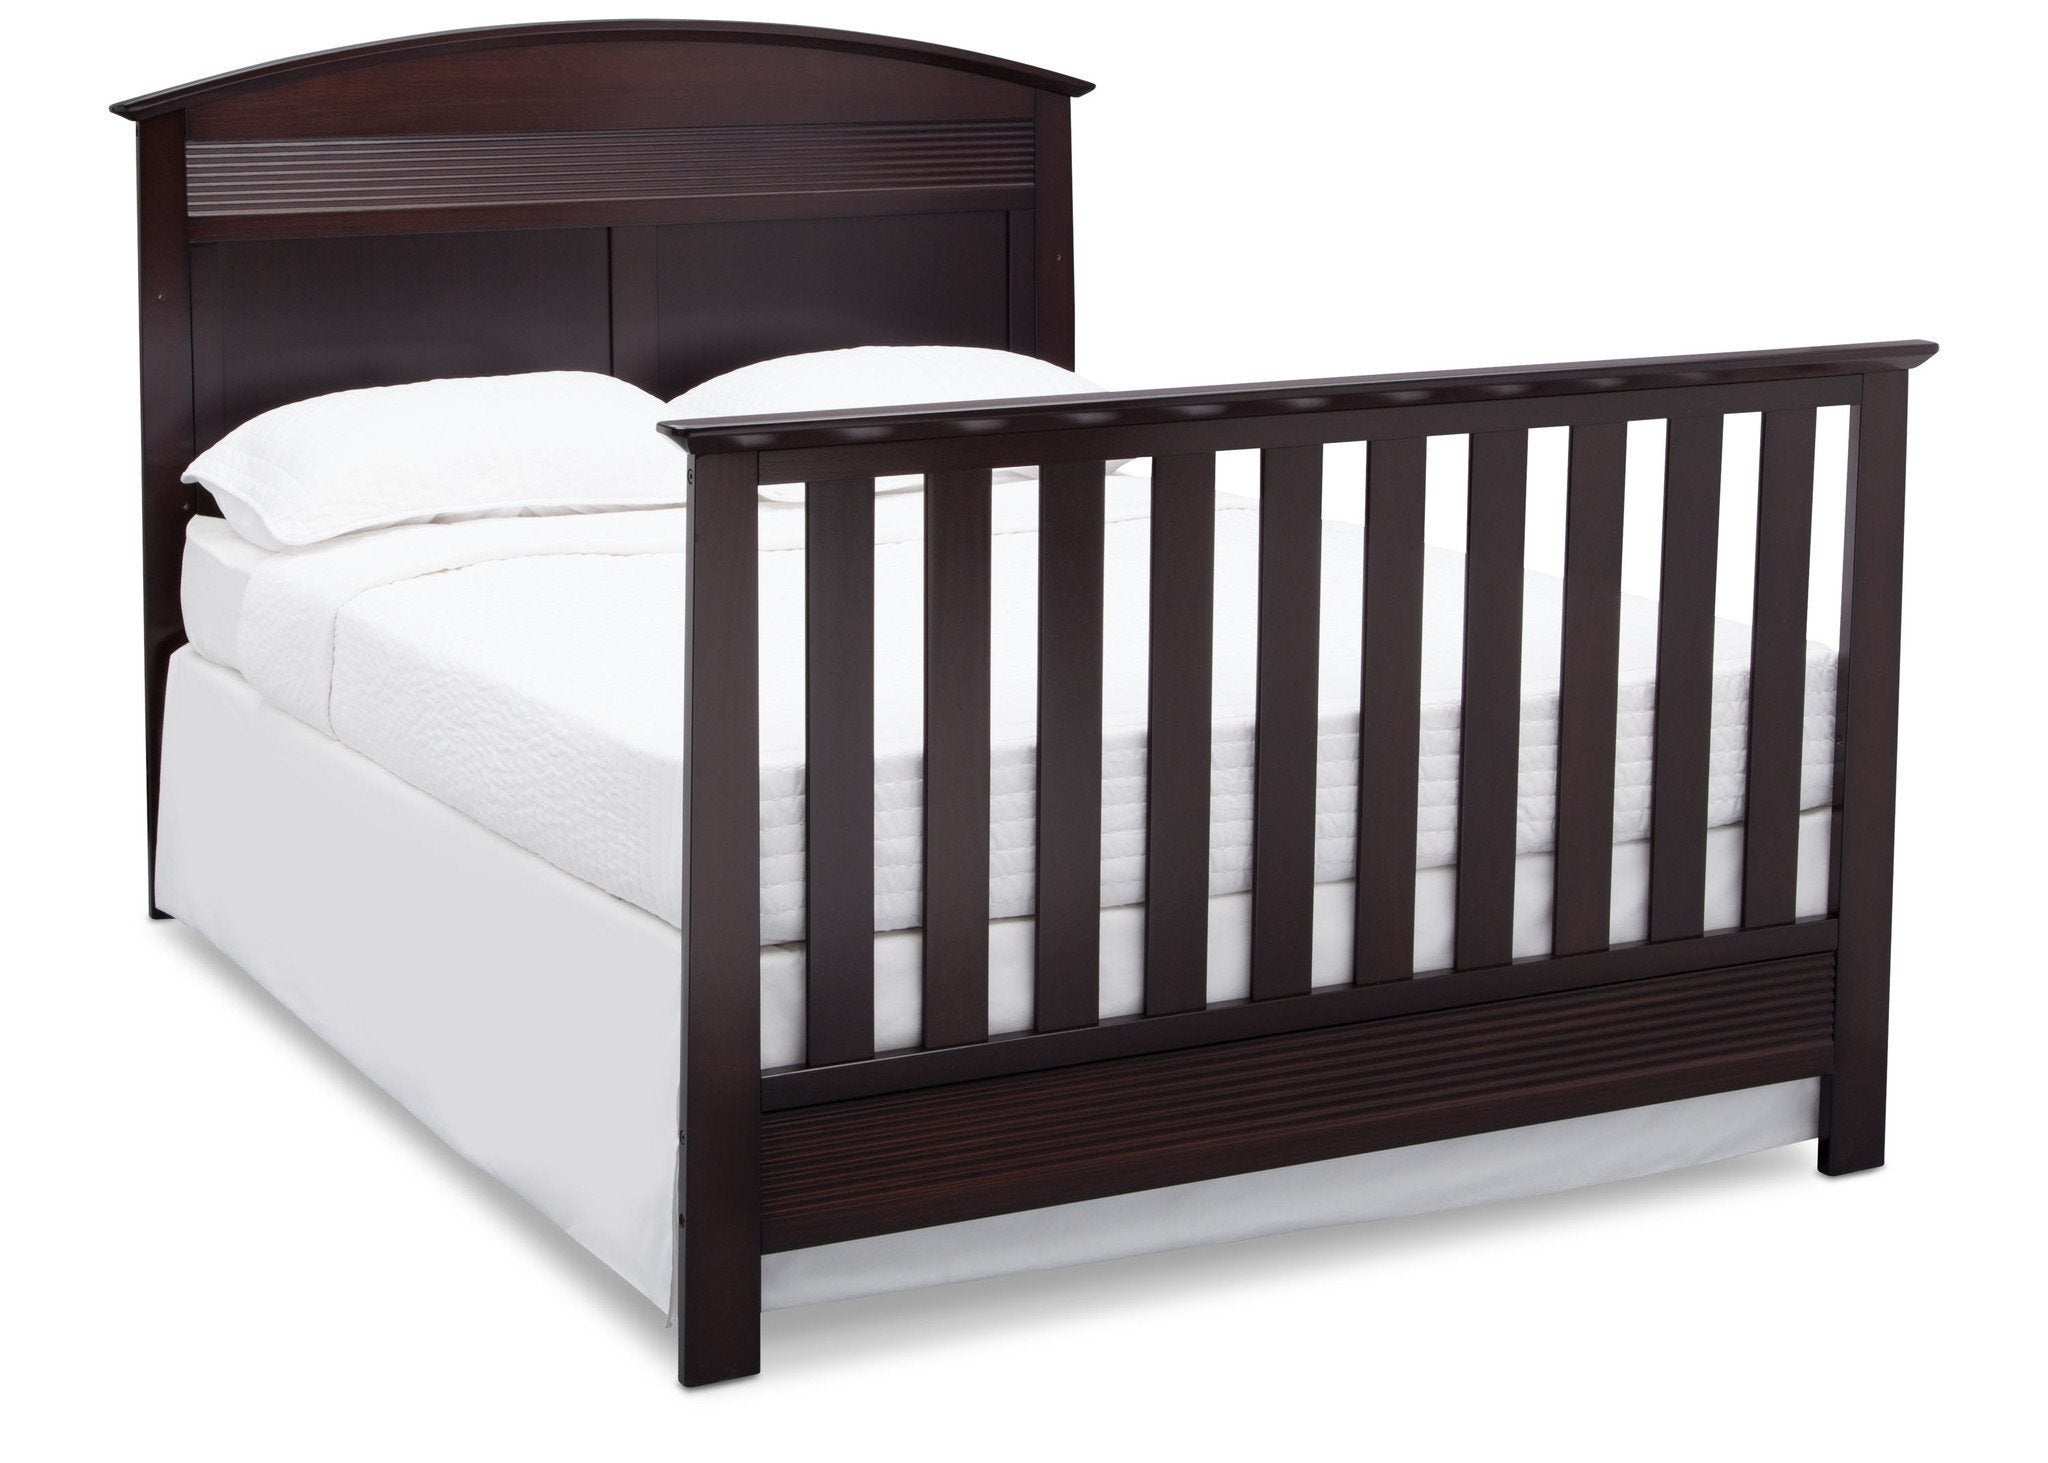 Serta Dark Chocolate (207) Ashland 4-in-1 Convertible Crib, Right Toddler Bed View with Footboard c6c